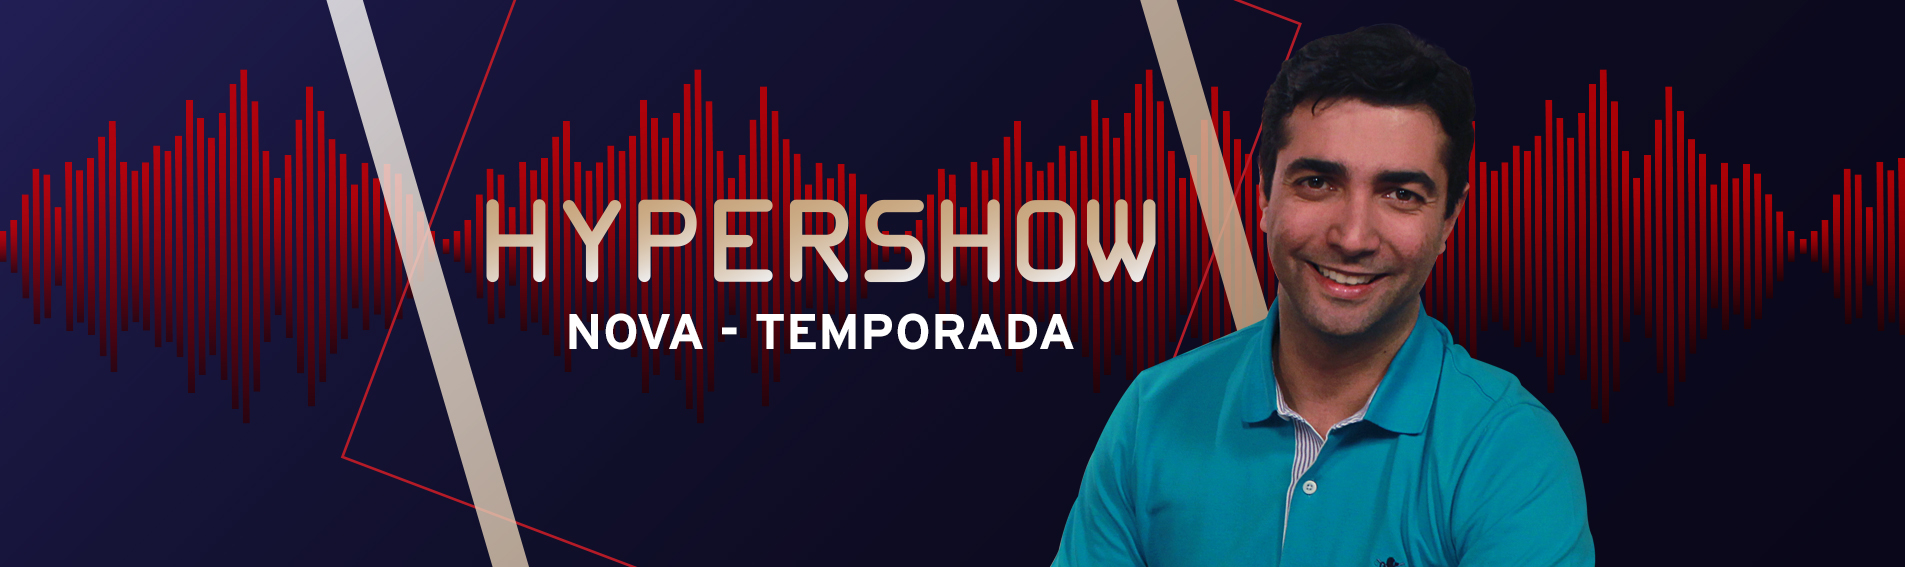 hypersow-banner